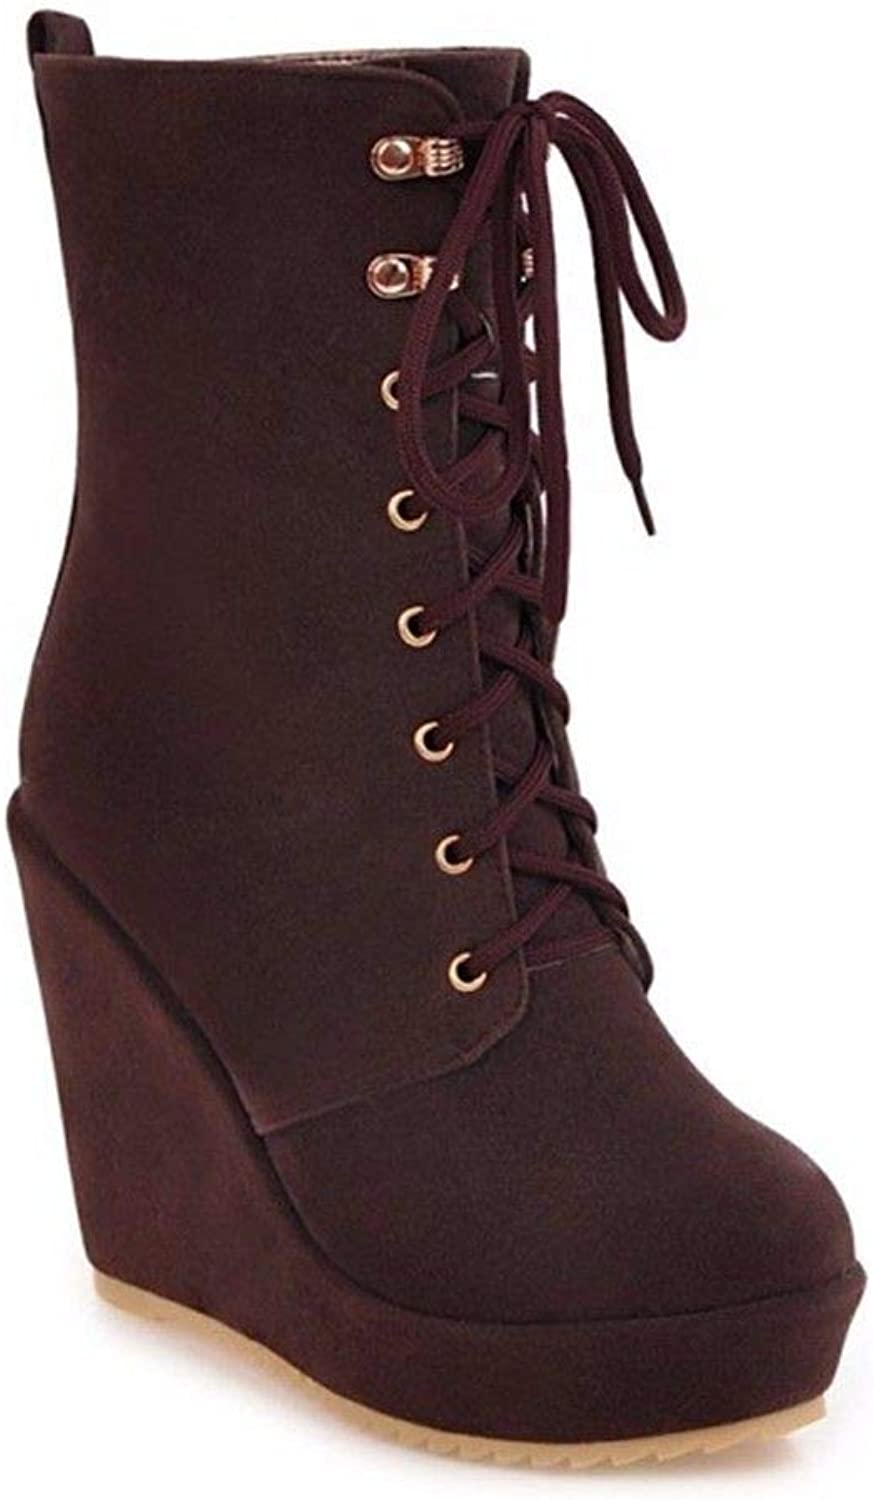 Ms. Winter high Heeled Boots with Frosted Slope Front Tie Size Boots